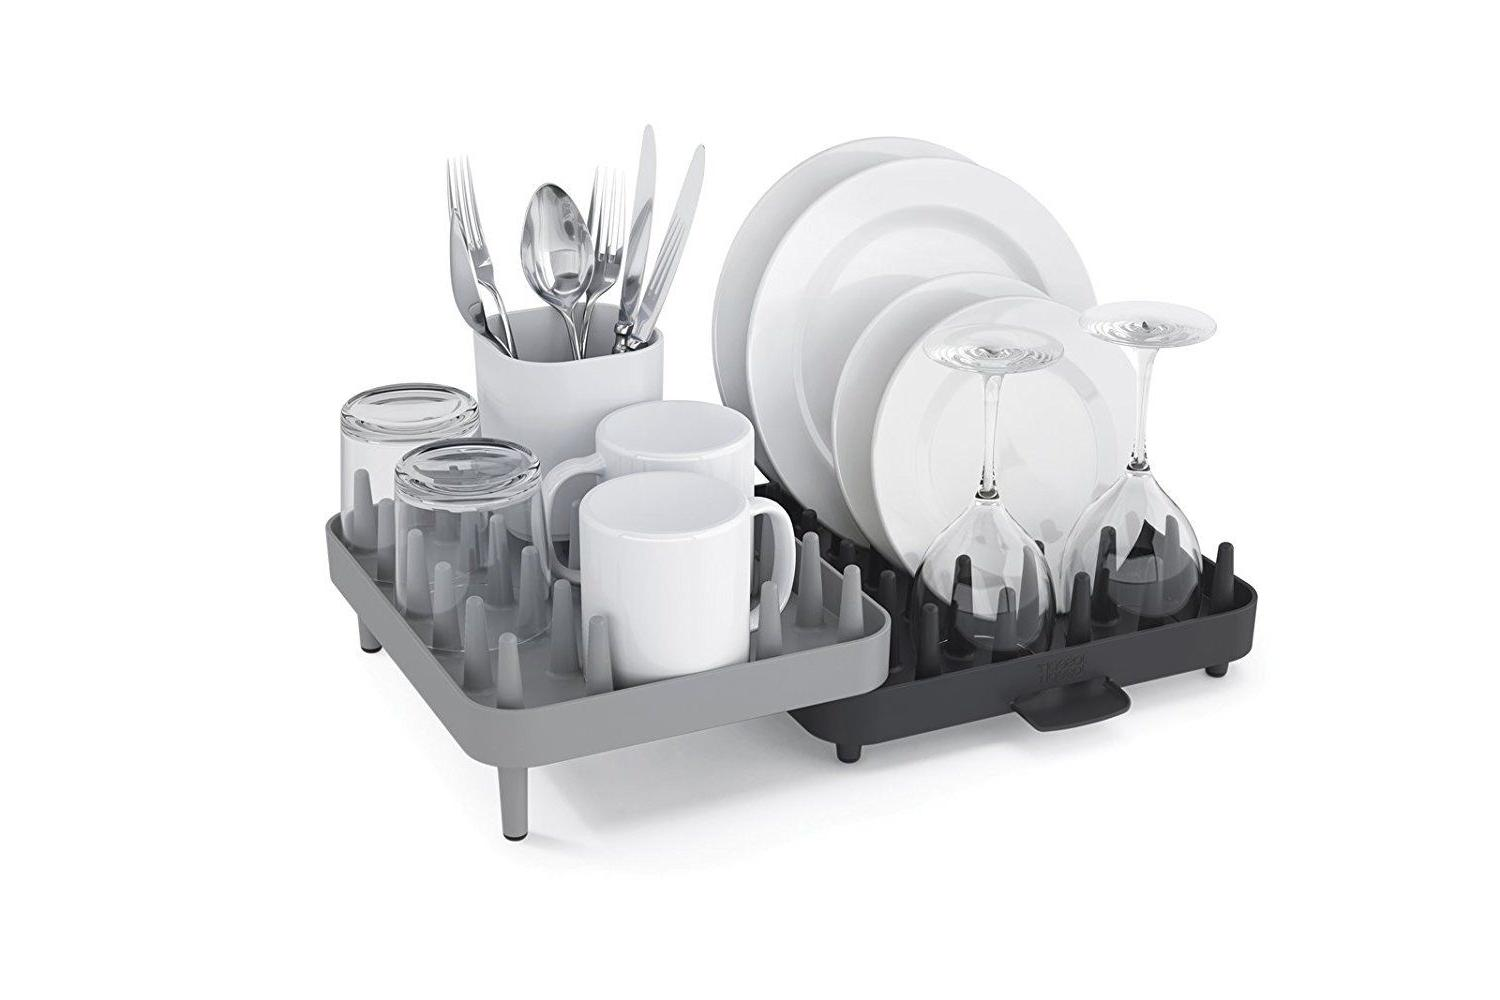 Joseph Connect Adjustable Dish and Drainboard